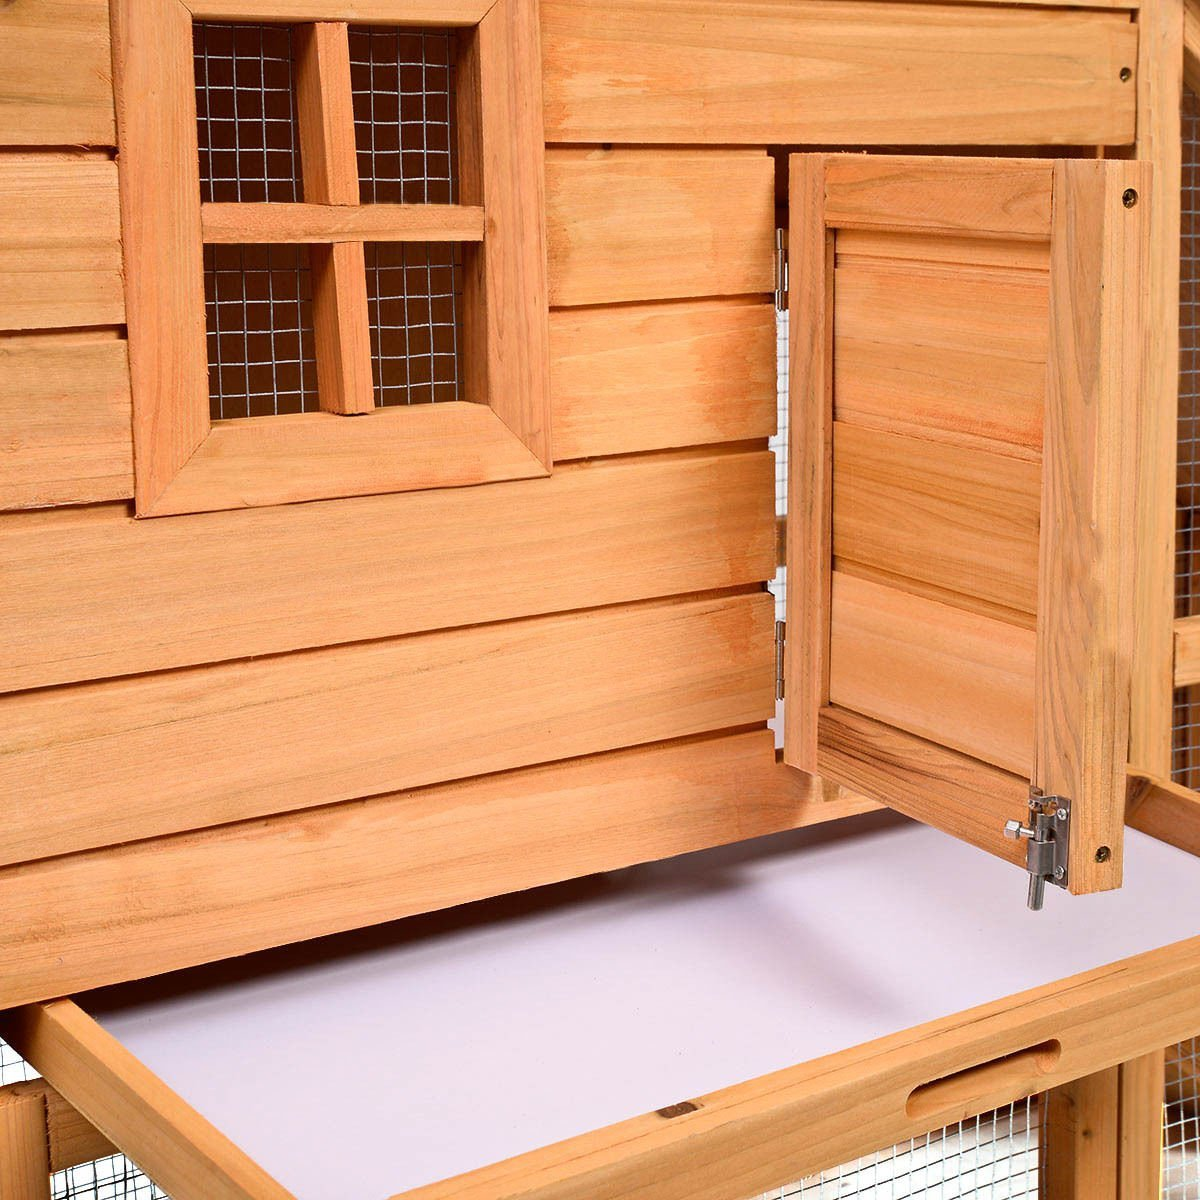 Tangkula Deluxe Wooden Chicken Coop 55'' Hen House Rabbit Wood Hutch Poultry Cage Habitat by Tangkula (Image #4)